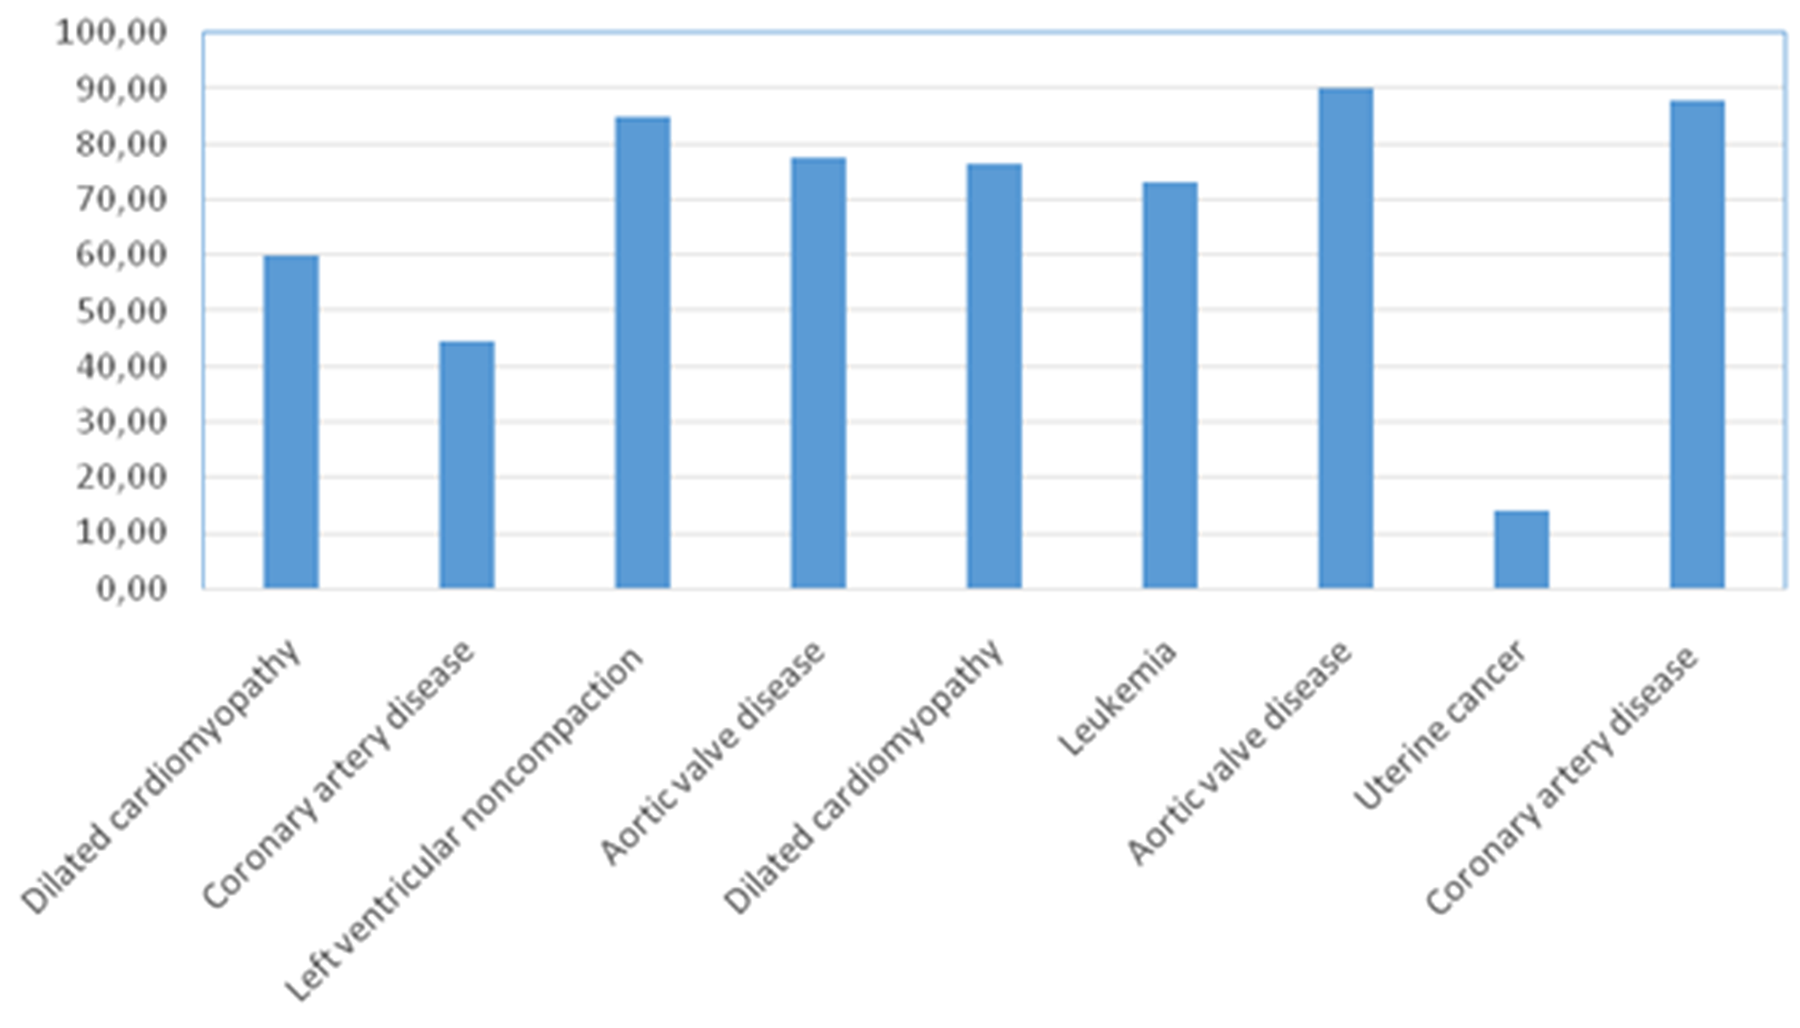 Percentage of Neuro D1 expressing cells in the adenohypophysis of patients without pituitary pathology.